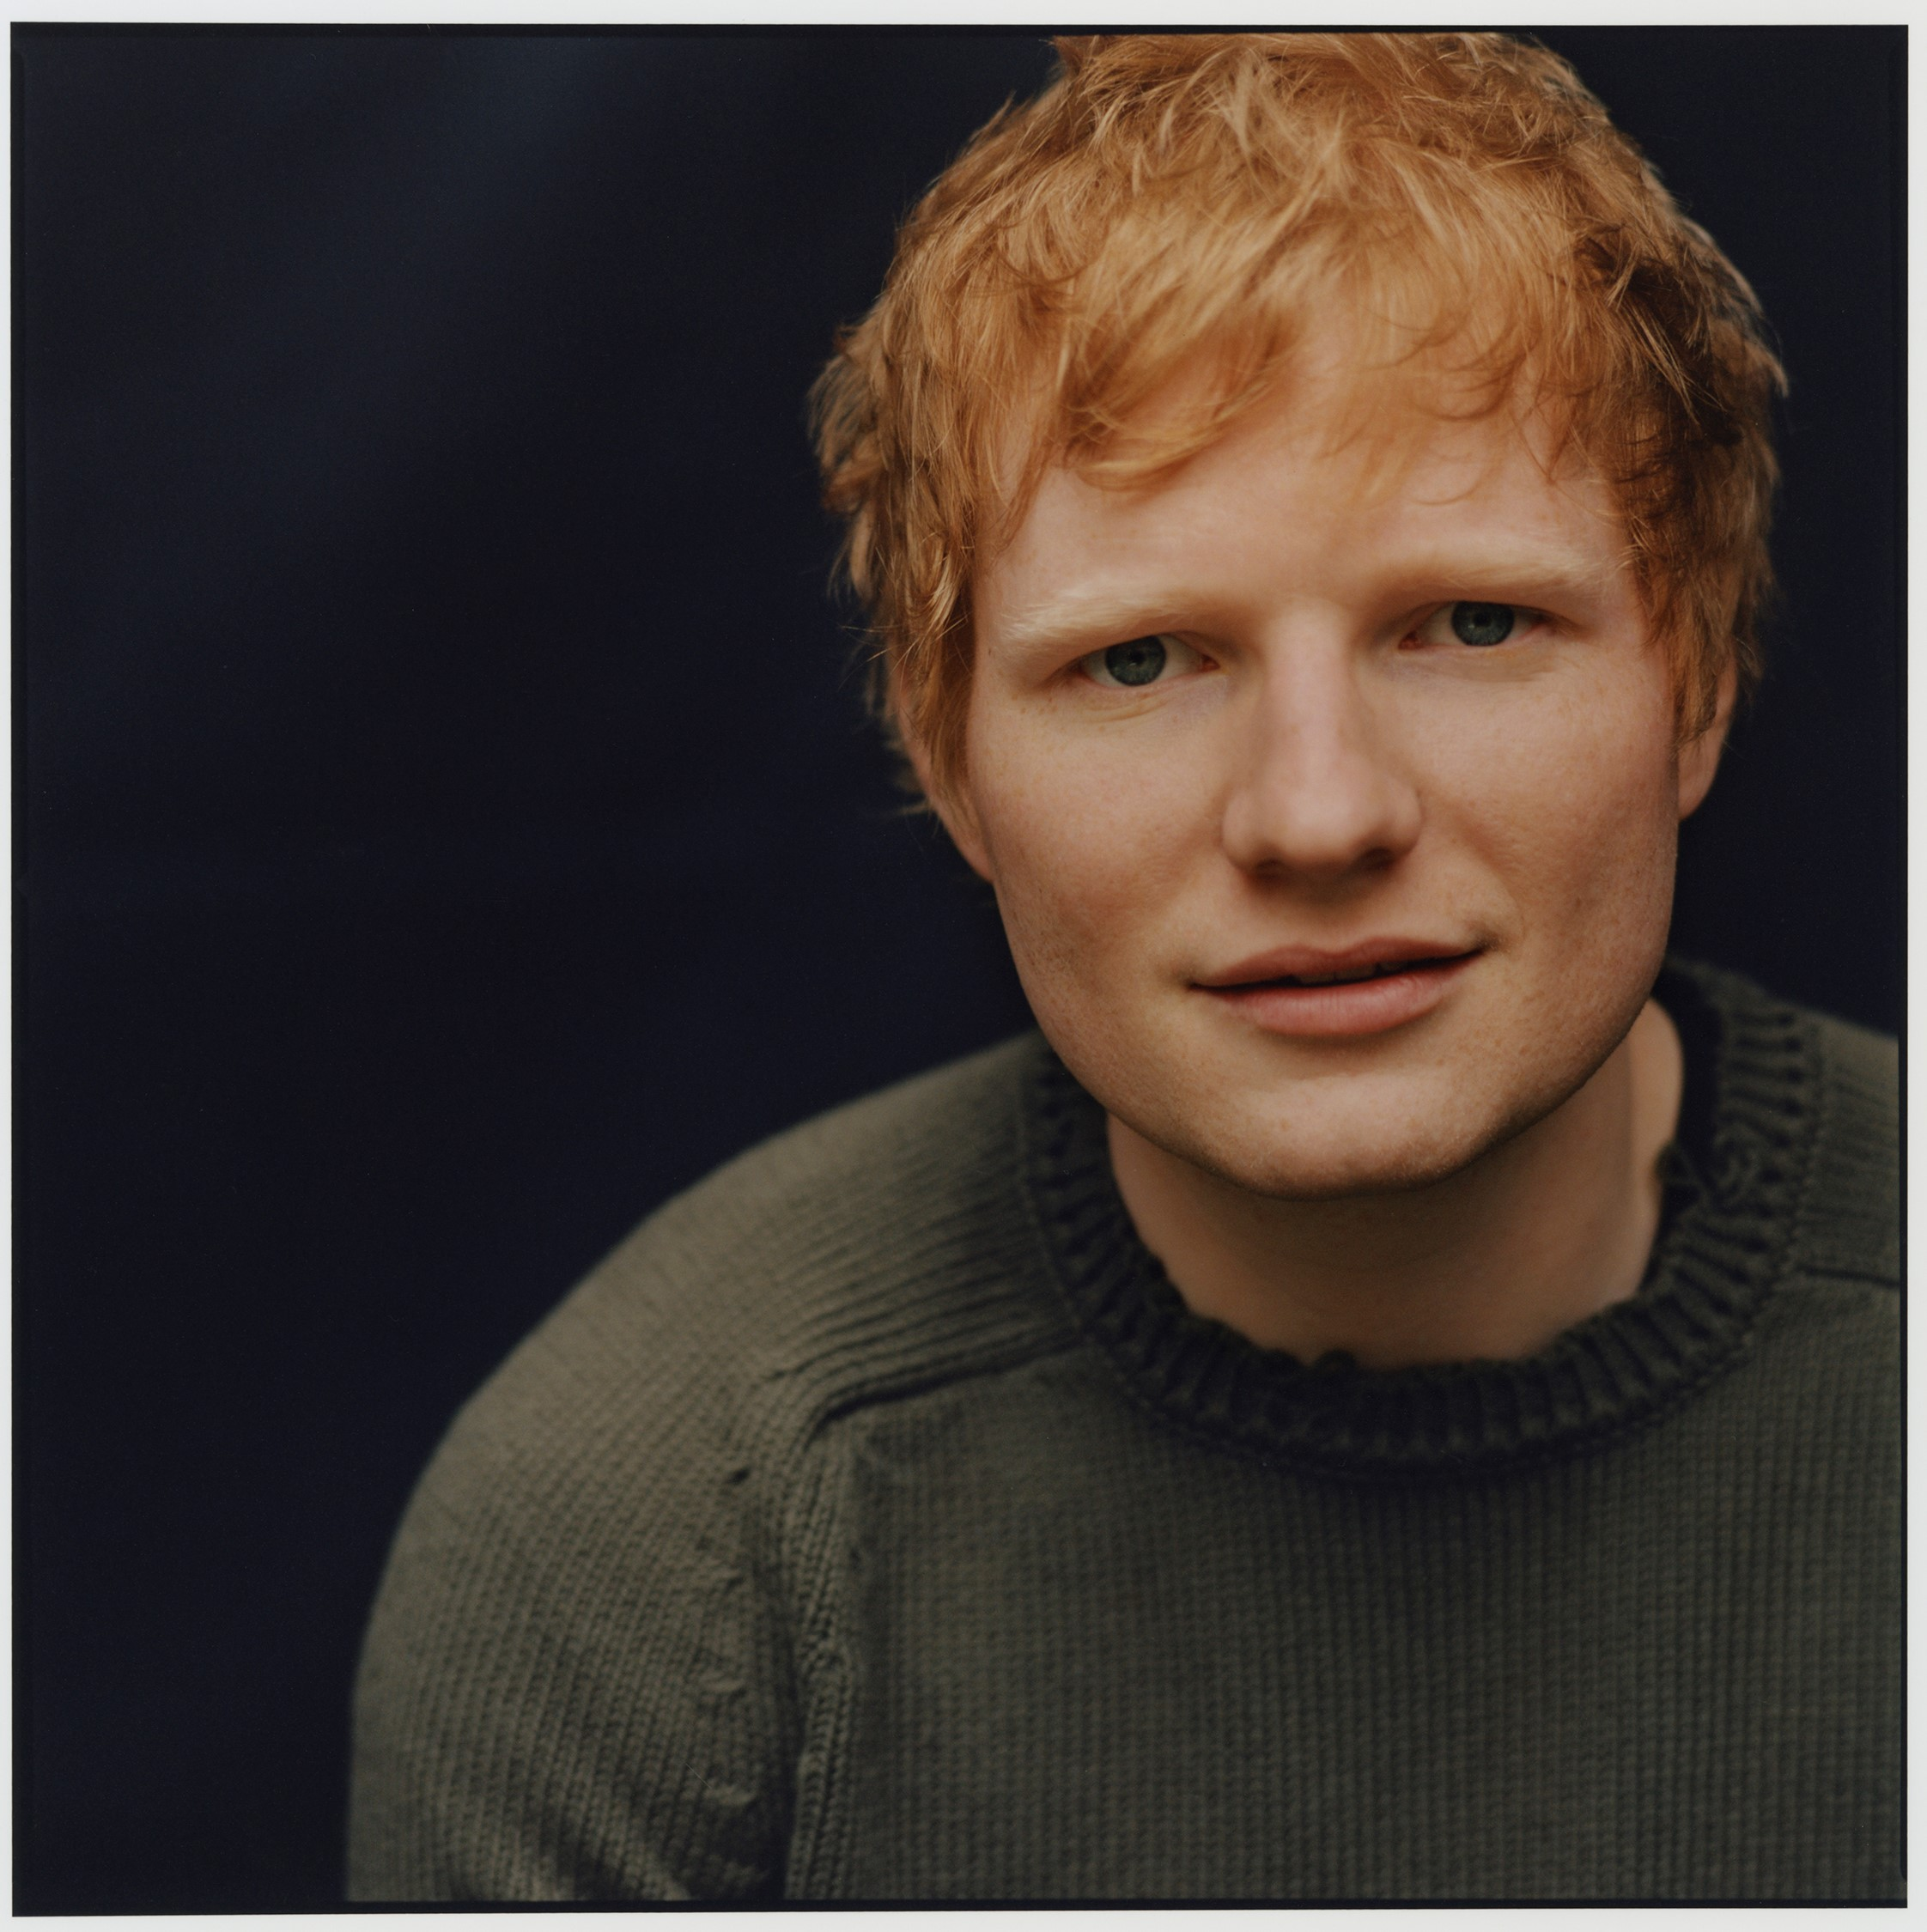 """SHOOTING STARS COUNTDOWN Friday September 10: Ed Sheeran's New Song """"Shivers"""" Debuts, But Can It Get To #1?"""